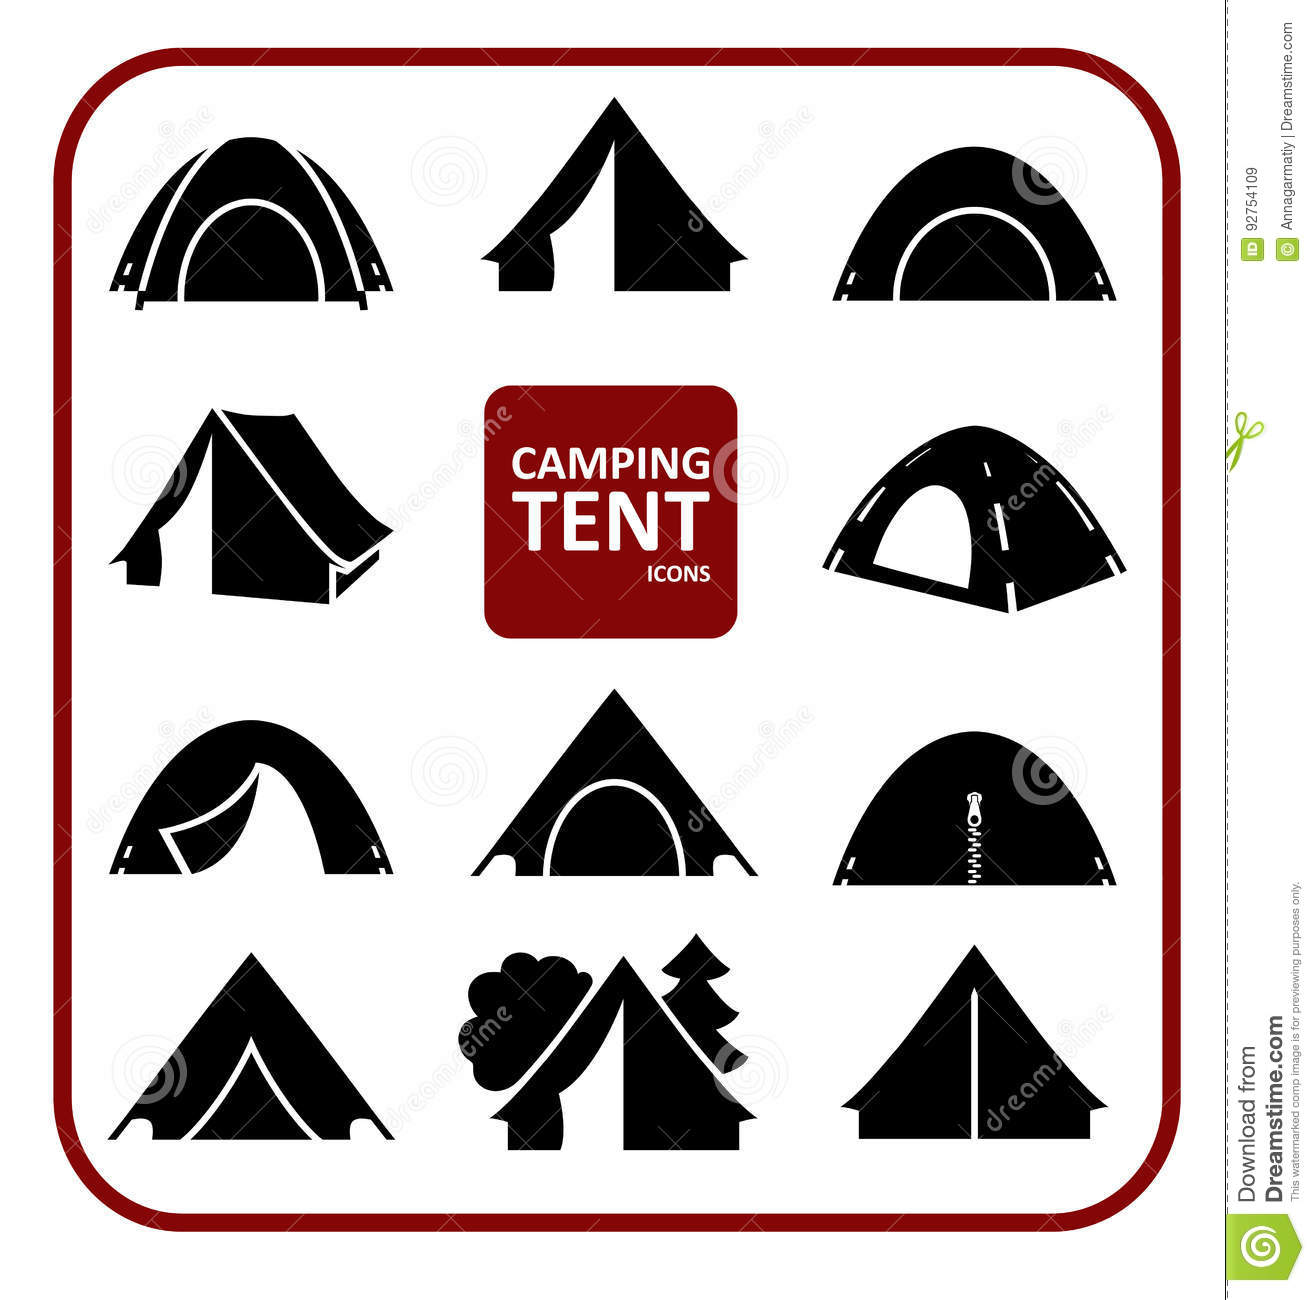 Camping tent icons set stock vector. Illustration of ...